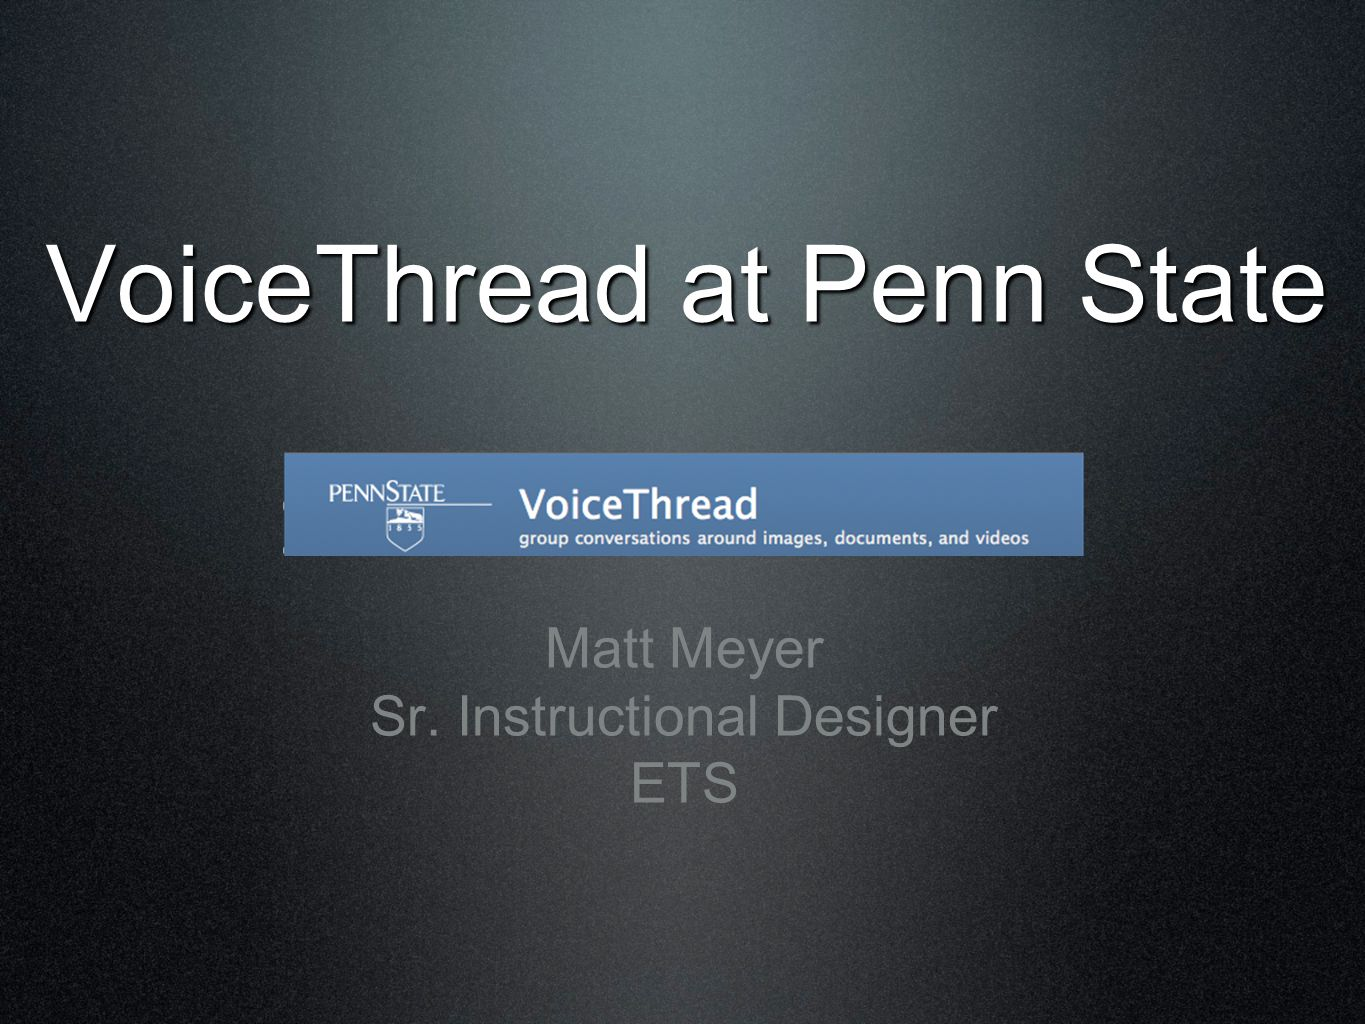 VoiceThread at Penn State What is a VoiceThread? Cloud based web application/service Upload various media to a slideshow Shared with others who can comment via microphone, webcam, text, phone audio file Cloud based web application/service Upload various media to a slideshow Shared with others who can comment via microphone, webcam, text, phone audio file